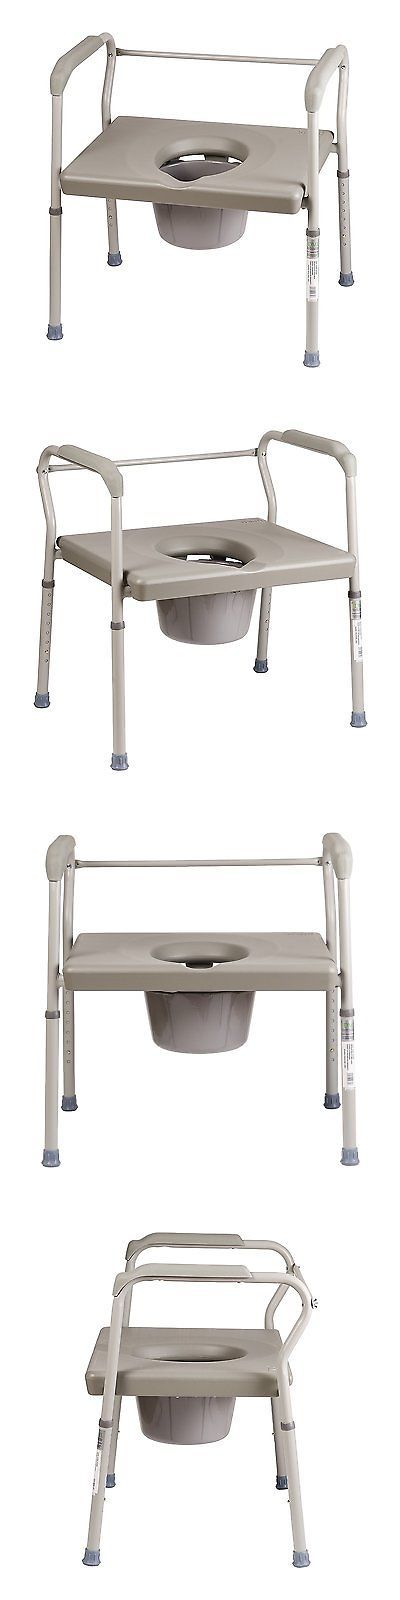 Best 20 Toilet Chair Ideas On Pinterest Toilet Tent